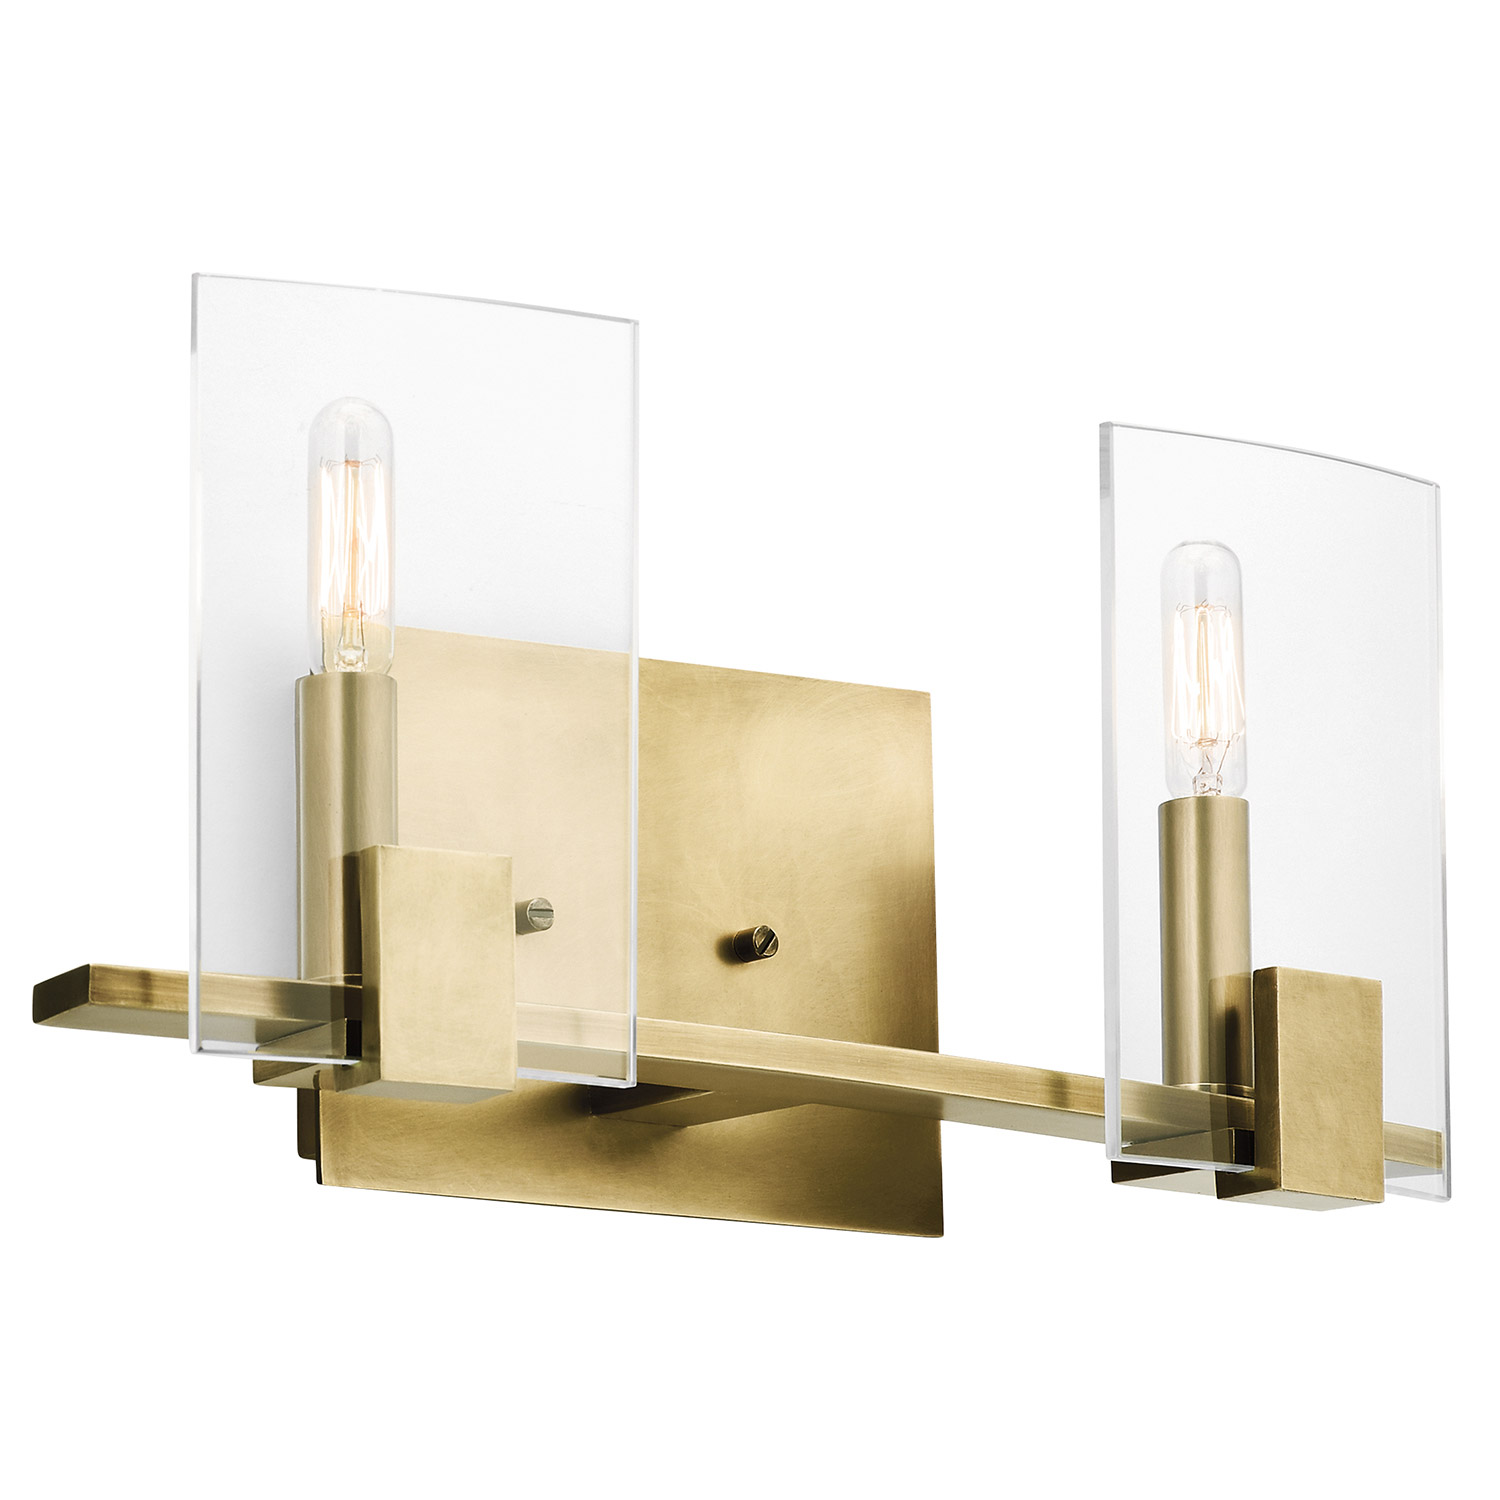 Vanity Lights Kichler : Kichler 45702NBR Signata Bathroom Vanity Light